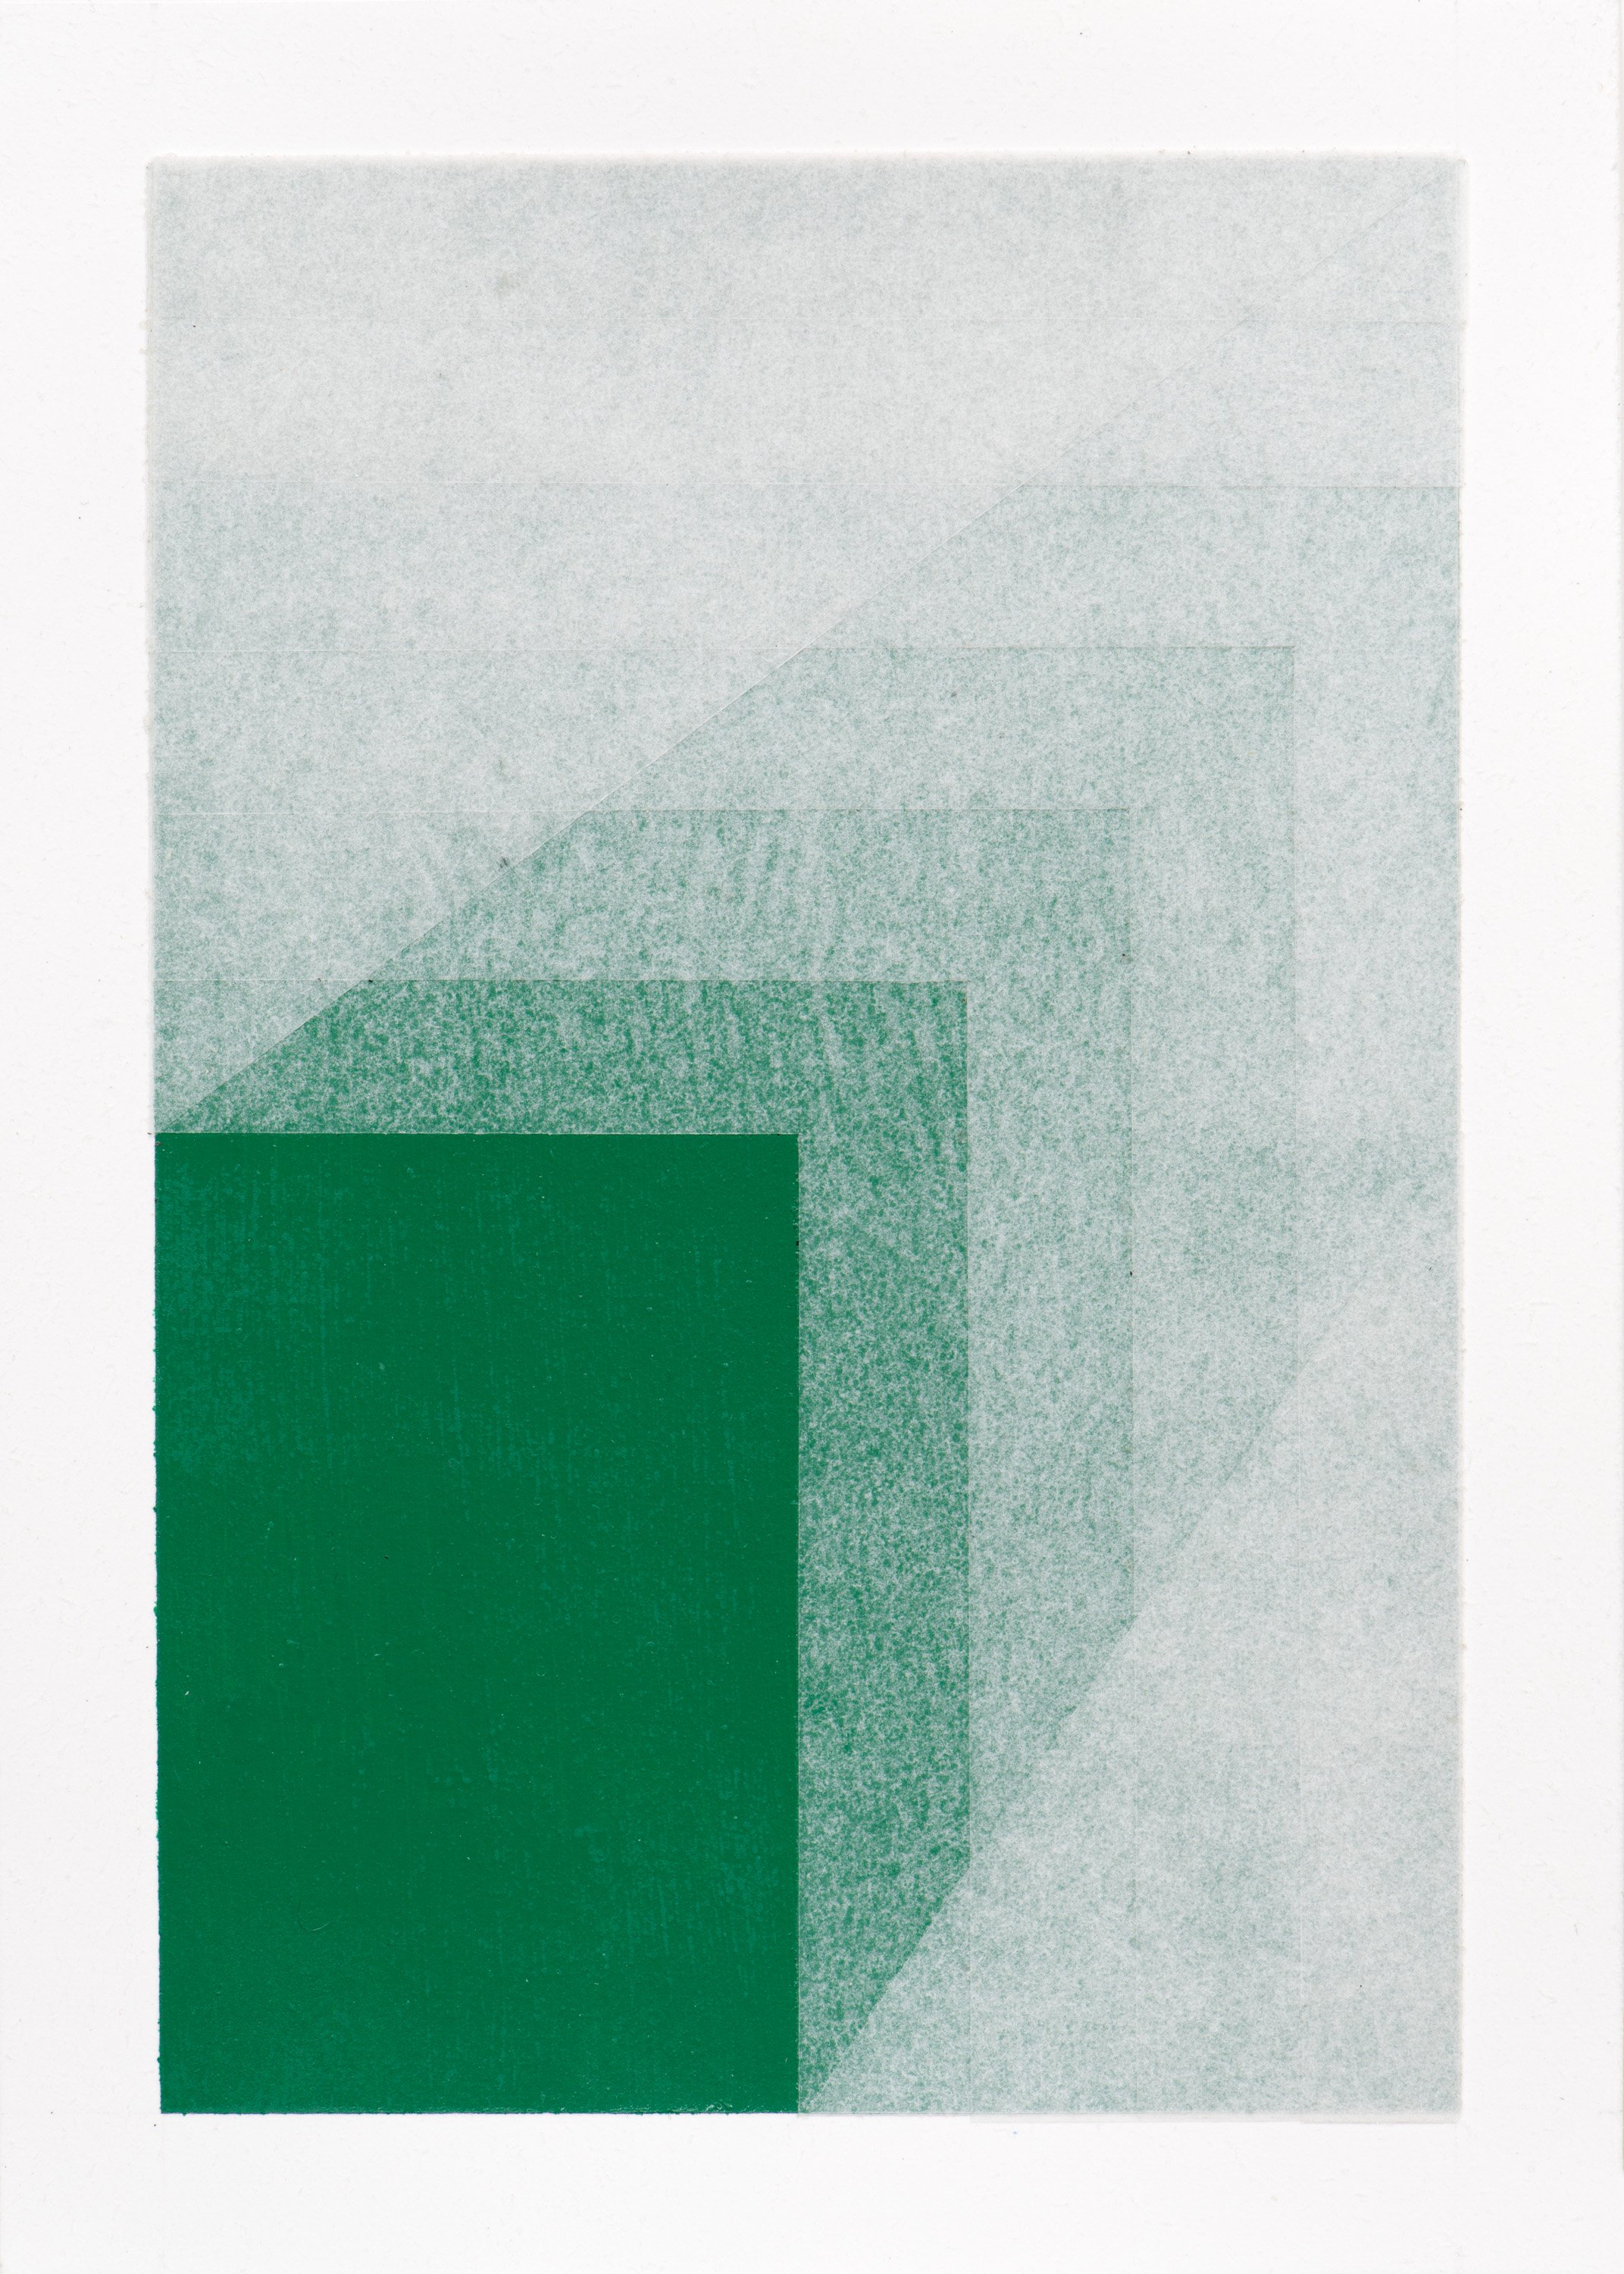 Emerald Green , 2017 Acrylic and vellum on paper 9 3/4 x 6 3/4 inches